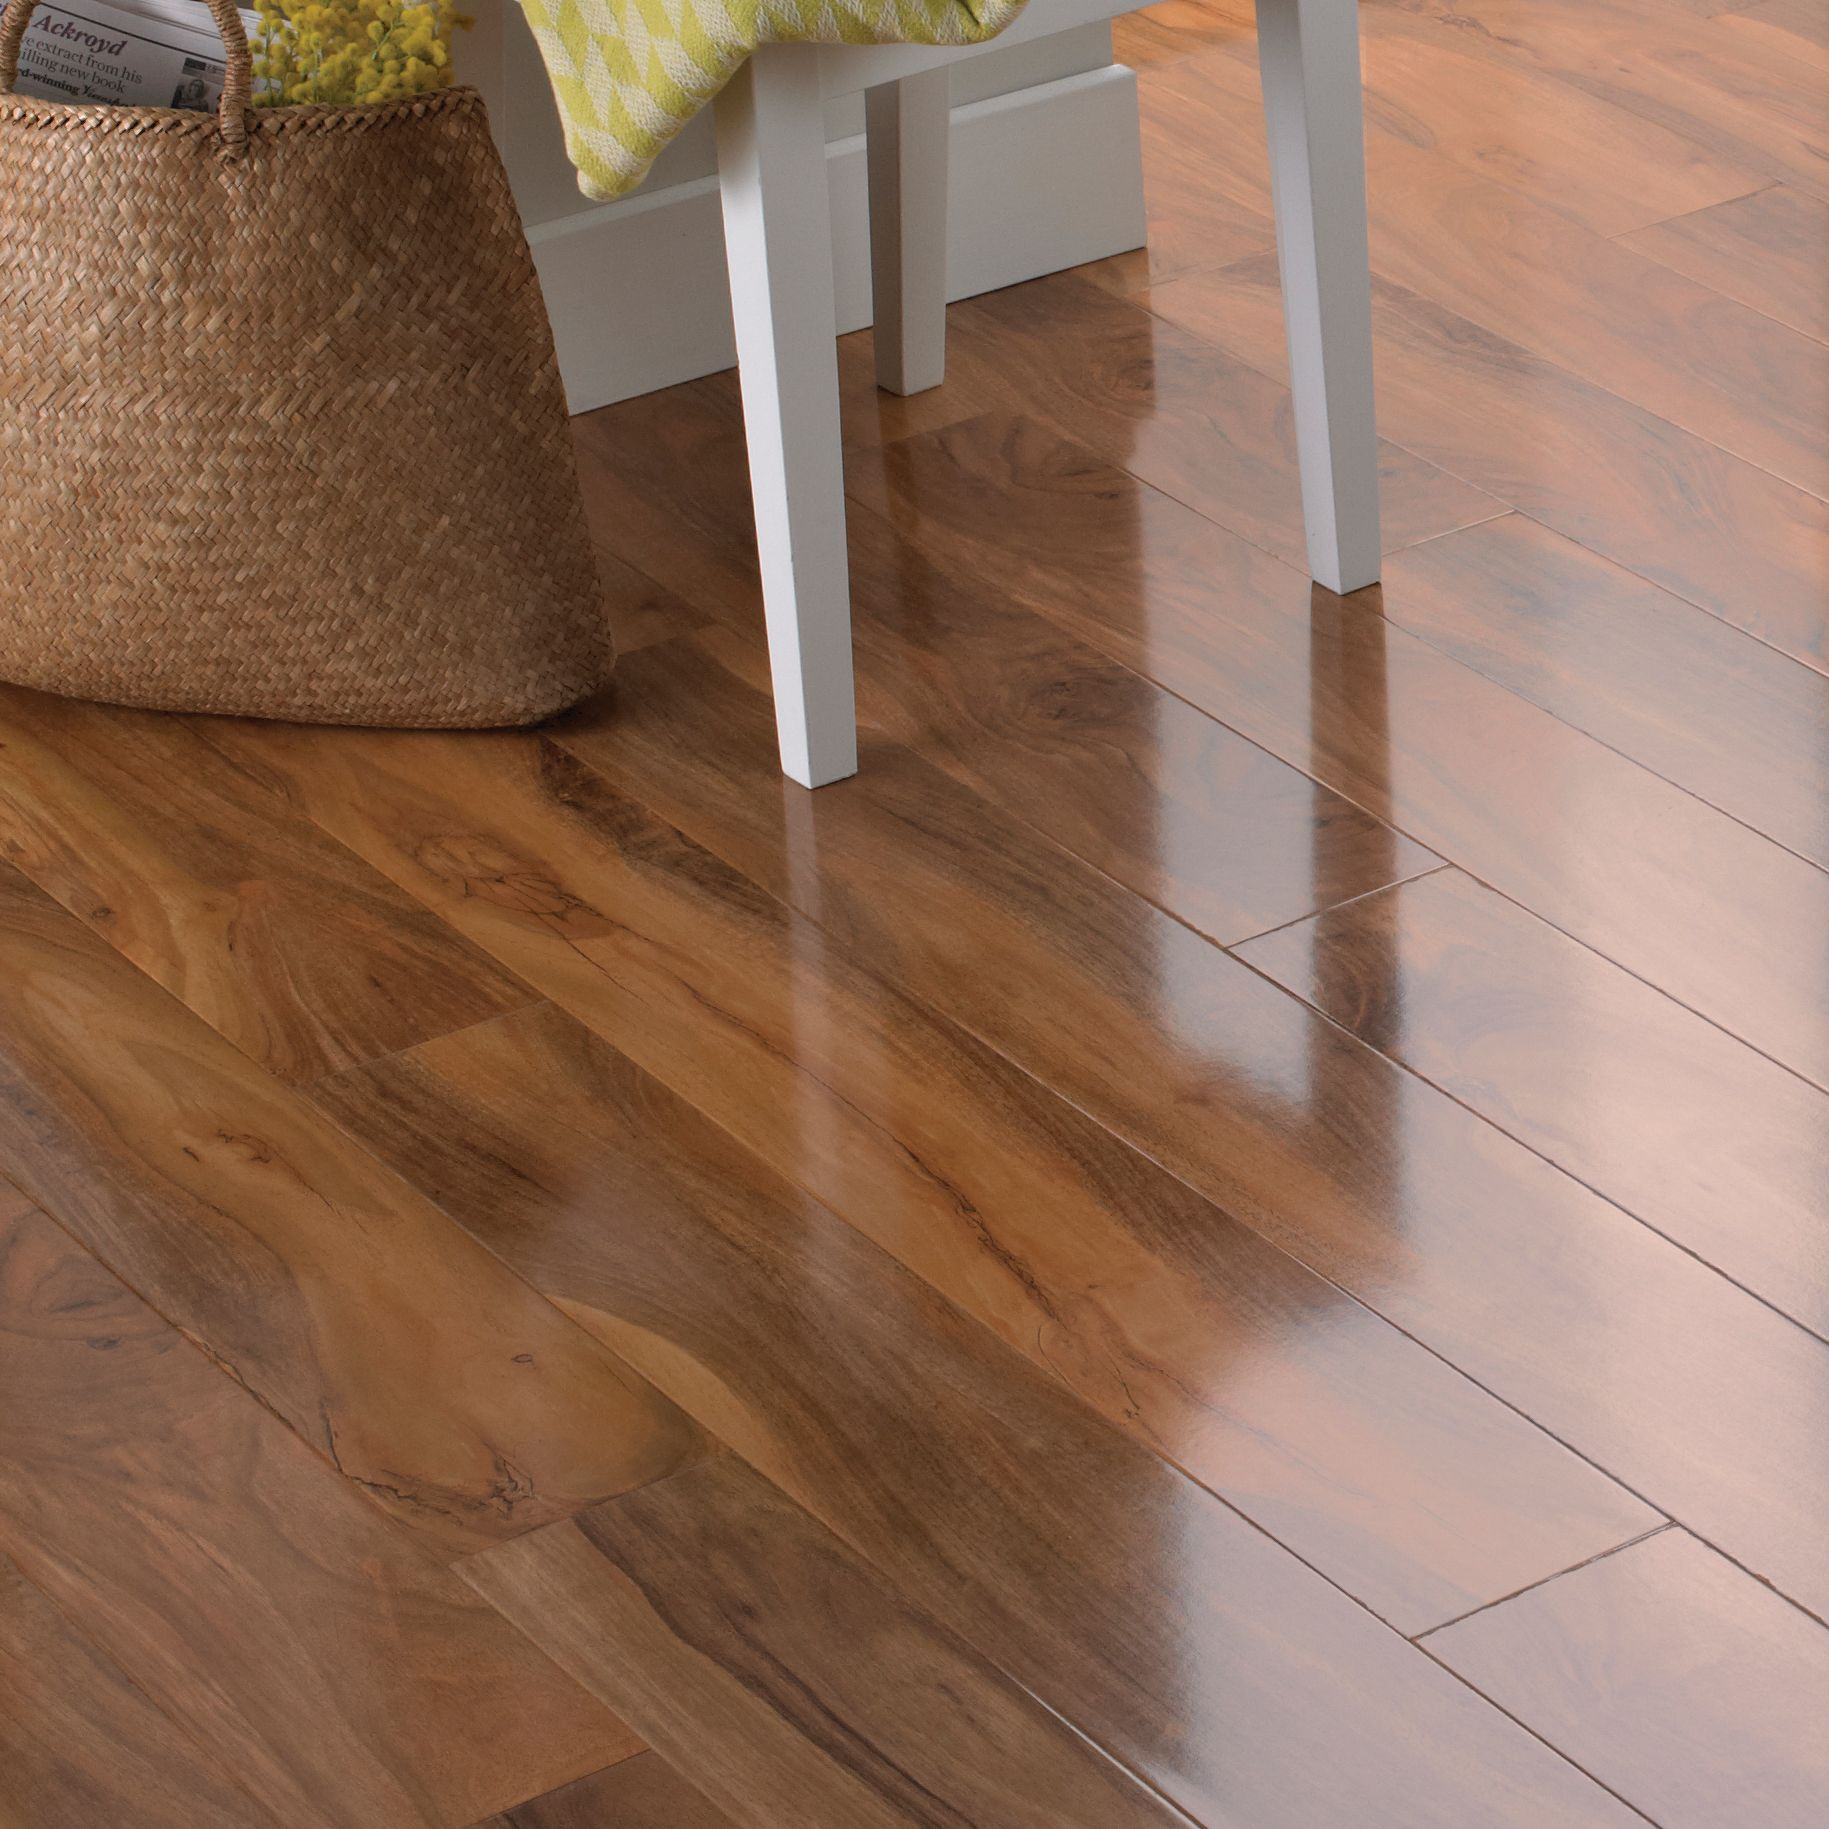 Dolce natural walnut effect laminate flooring m pack for Floating laminate floor